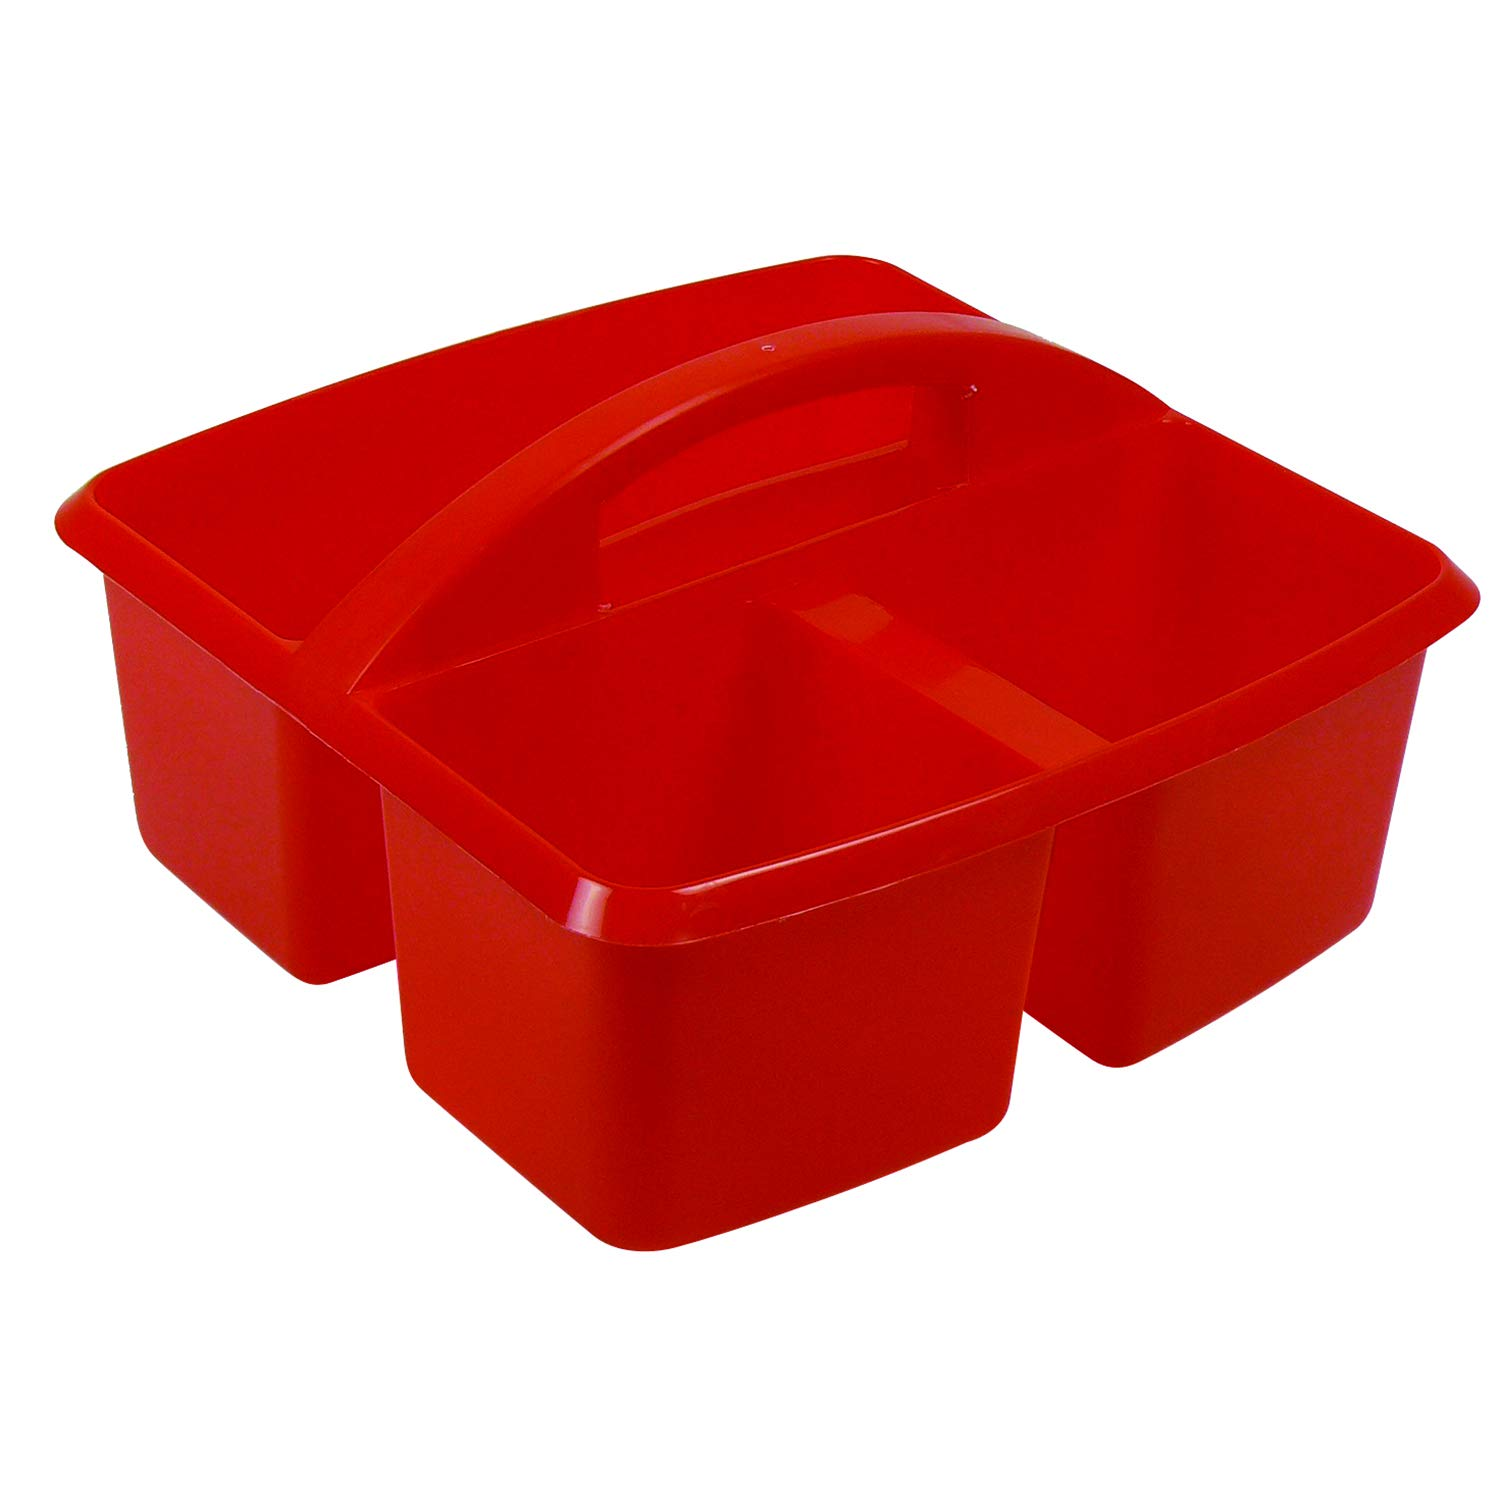 Romanoff Products ROM25902BN Small Utility Caddy, Red, Pack of 6